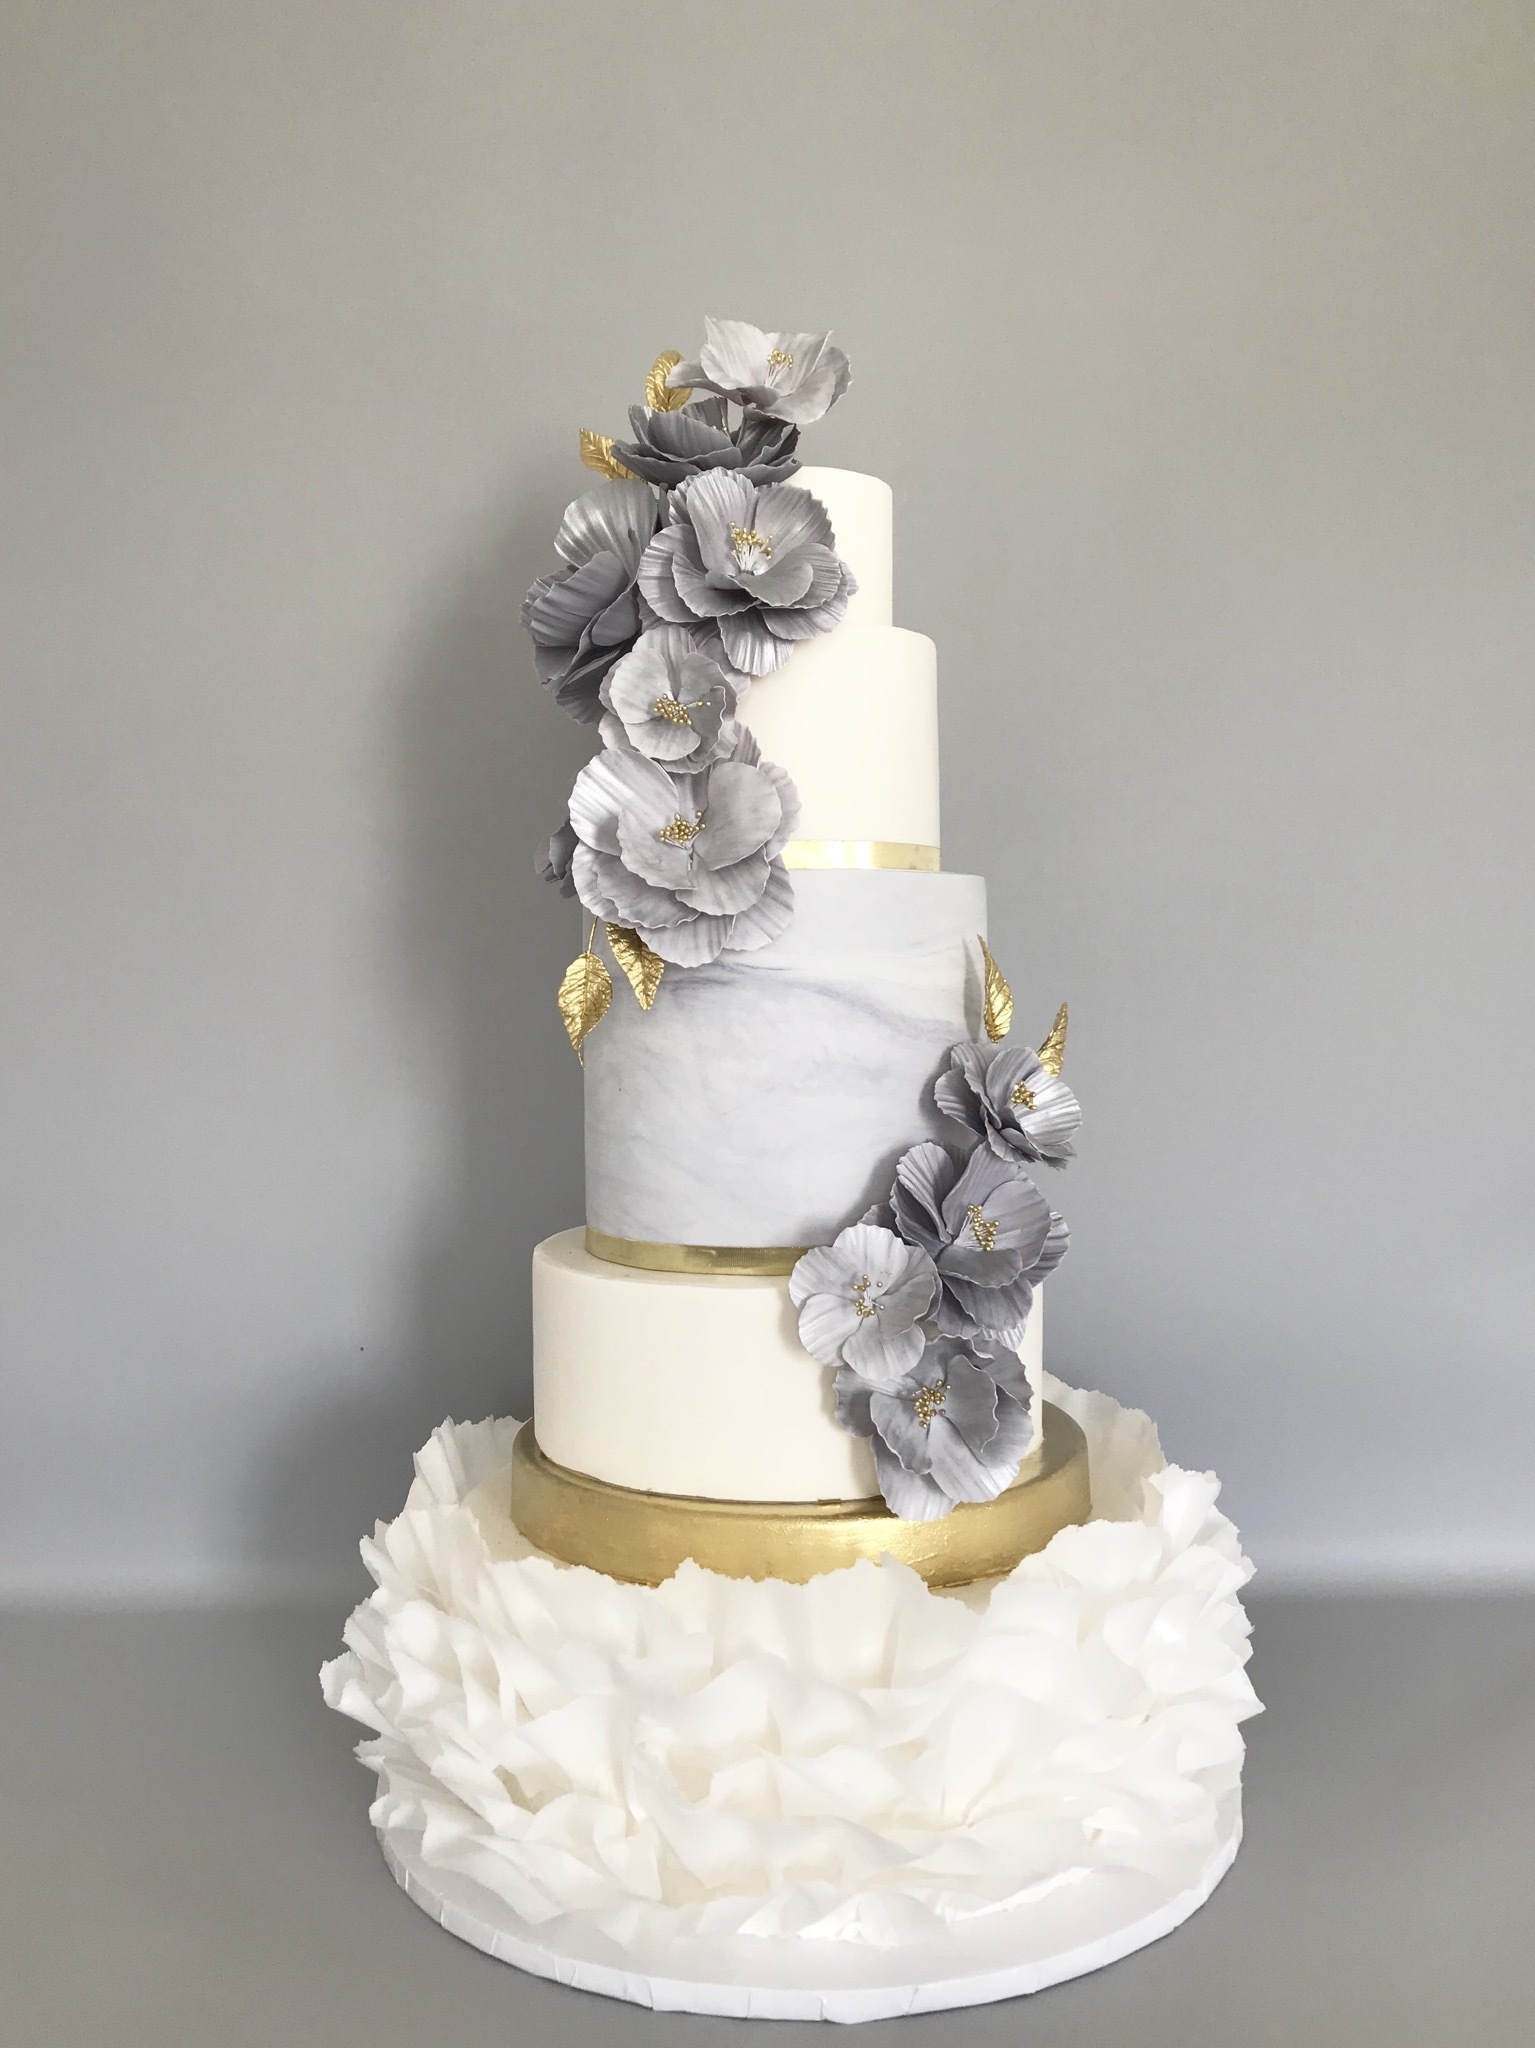 White and marbled gray fondant wedding cake with ruffles